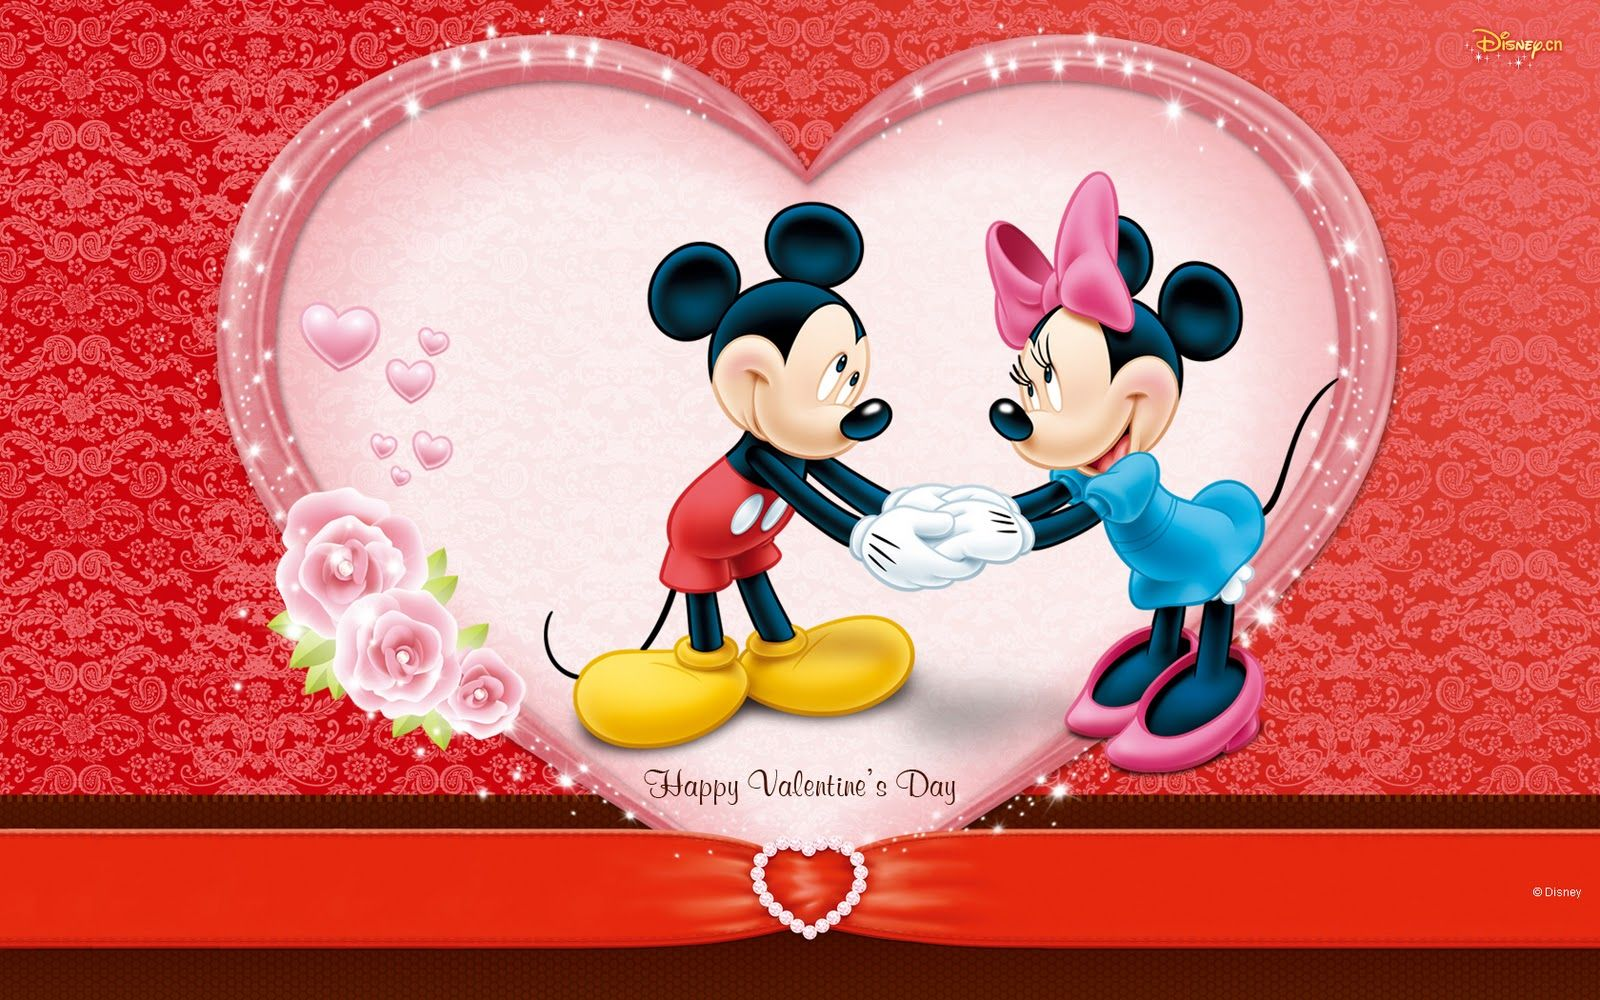 Free Valentine Wallpapers For Desktop Card E Cards 2013 Top 10 Valentine S Day Desktop Wa Valentines Wallpaper Disney Valentines Mickey Mouse Wallpaper